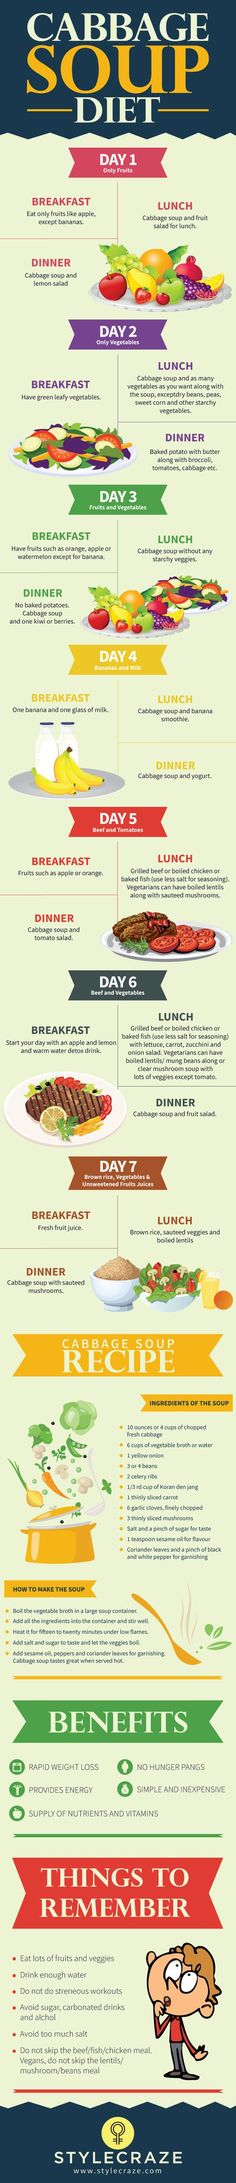 Cabbage Soup Diet For Rapid Weight Loss: Losing weight is one of the most challenging tasks. If you are in search of an effective diet that could help you reduce weight drastically, try the cabbage soup diet. This diet is extremely helpful for people who Diet Plans To Lose Weight, Fast Weight Loss, Reduce Weight, Weight Gain, How To Lose Weight Fast, Losing Weight, Lose Fat, Body Weight, Water Weight